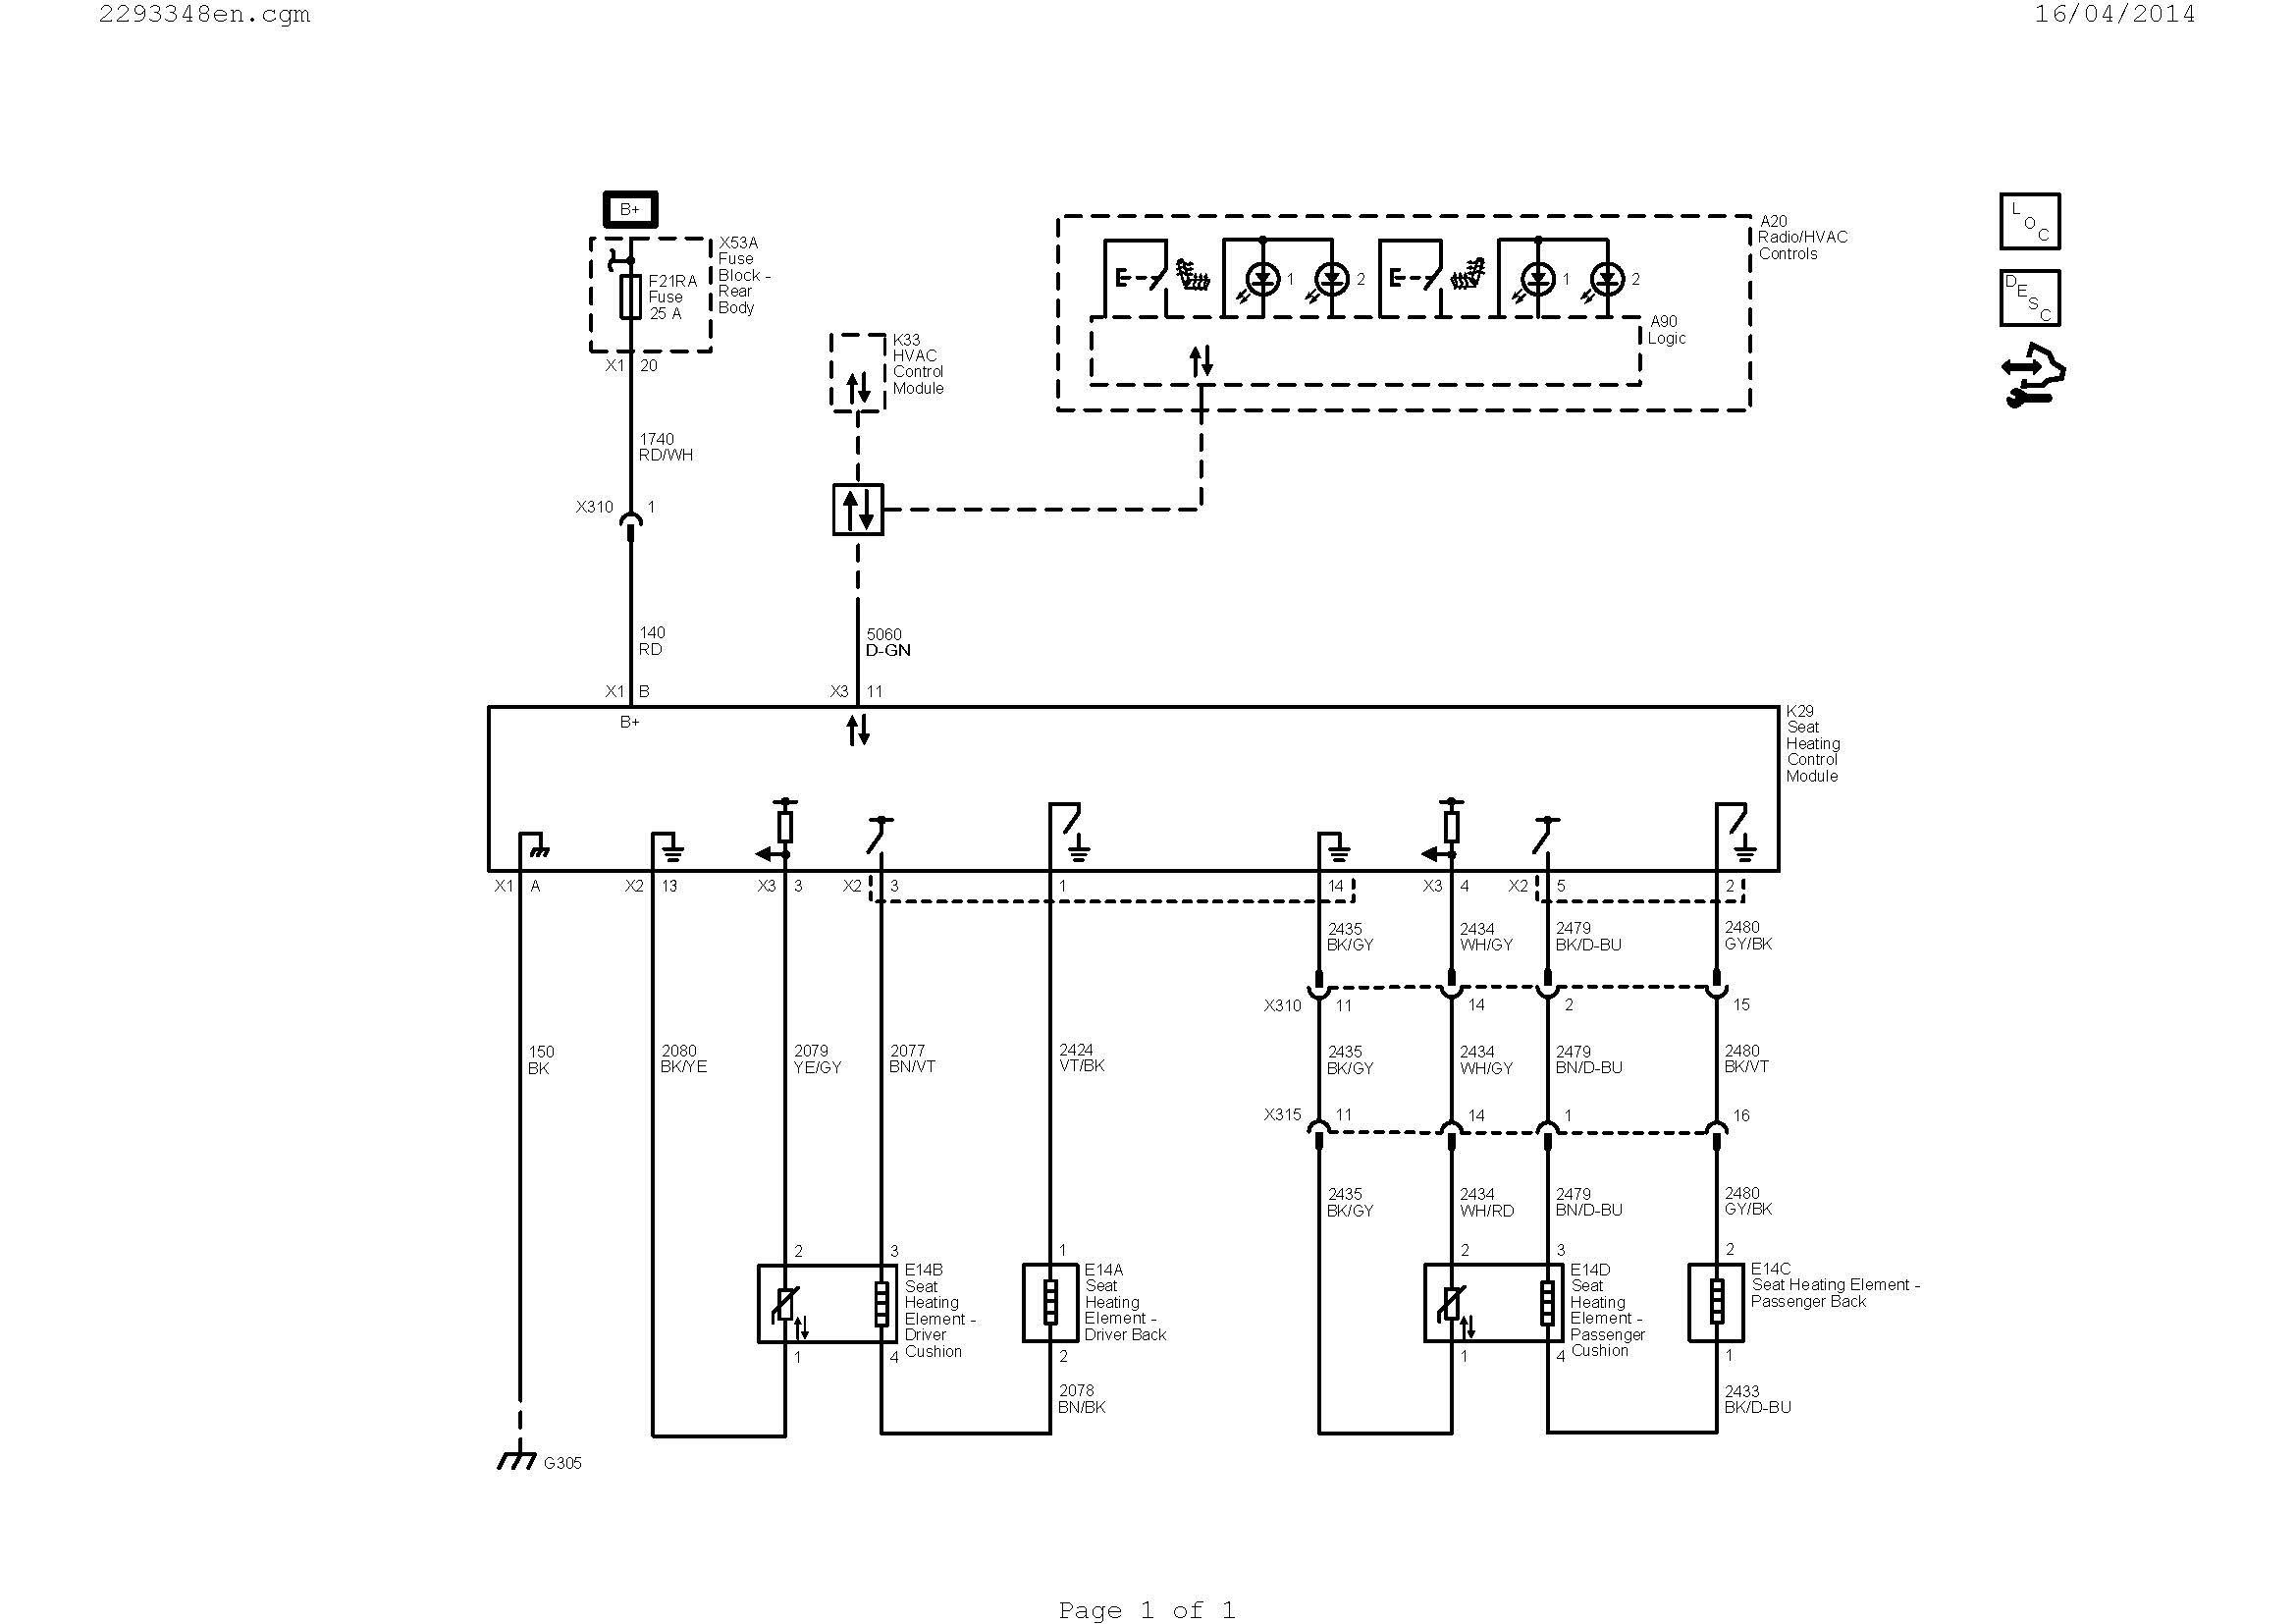 trane thermostat wiring diagram Collection-7 wire thermostat wiring diagram Download Wiring A Ac Thermostat Diagram New Wiring Diagram Ac 13-f